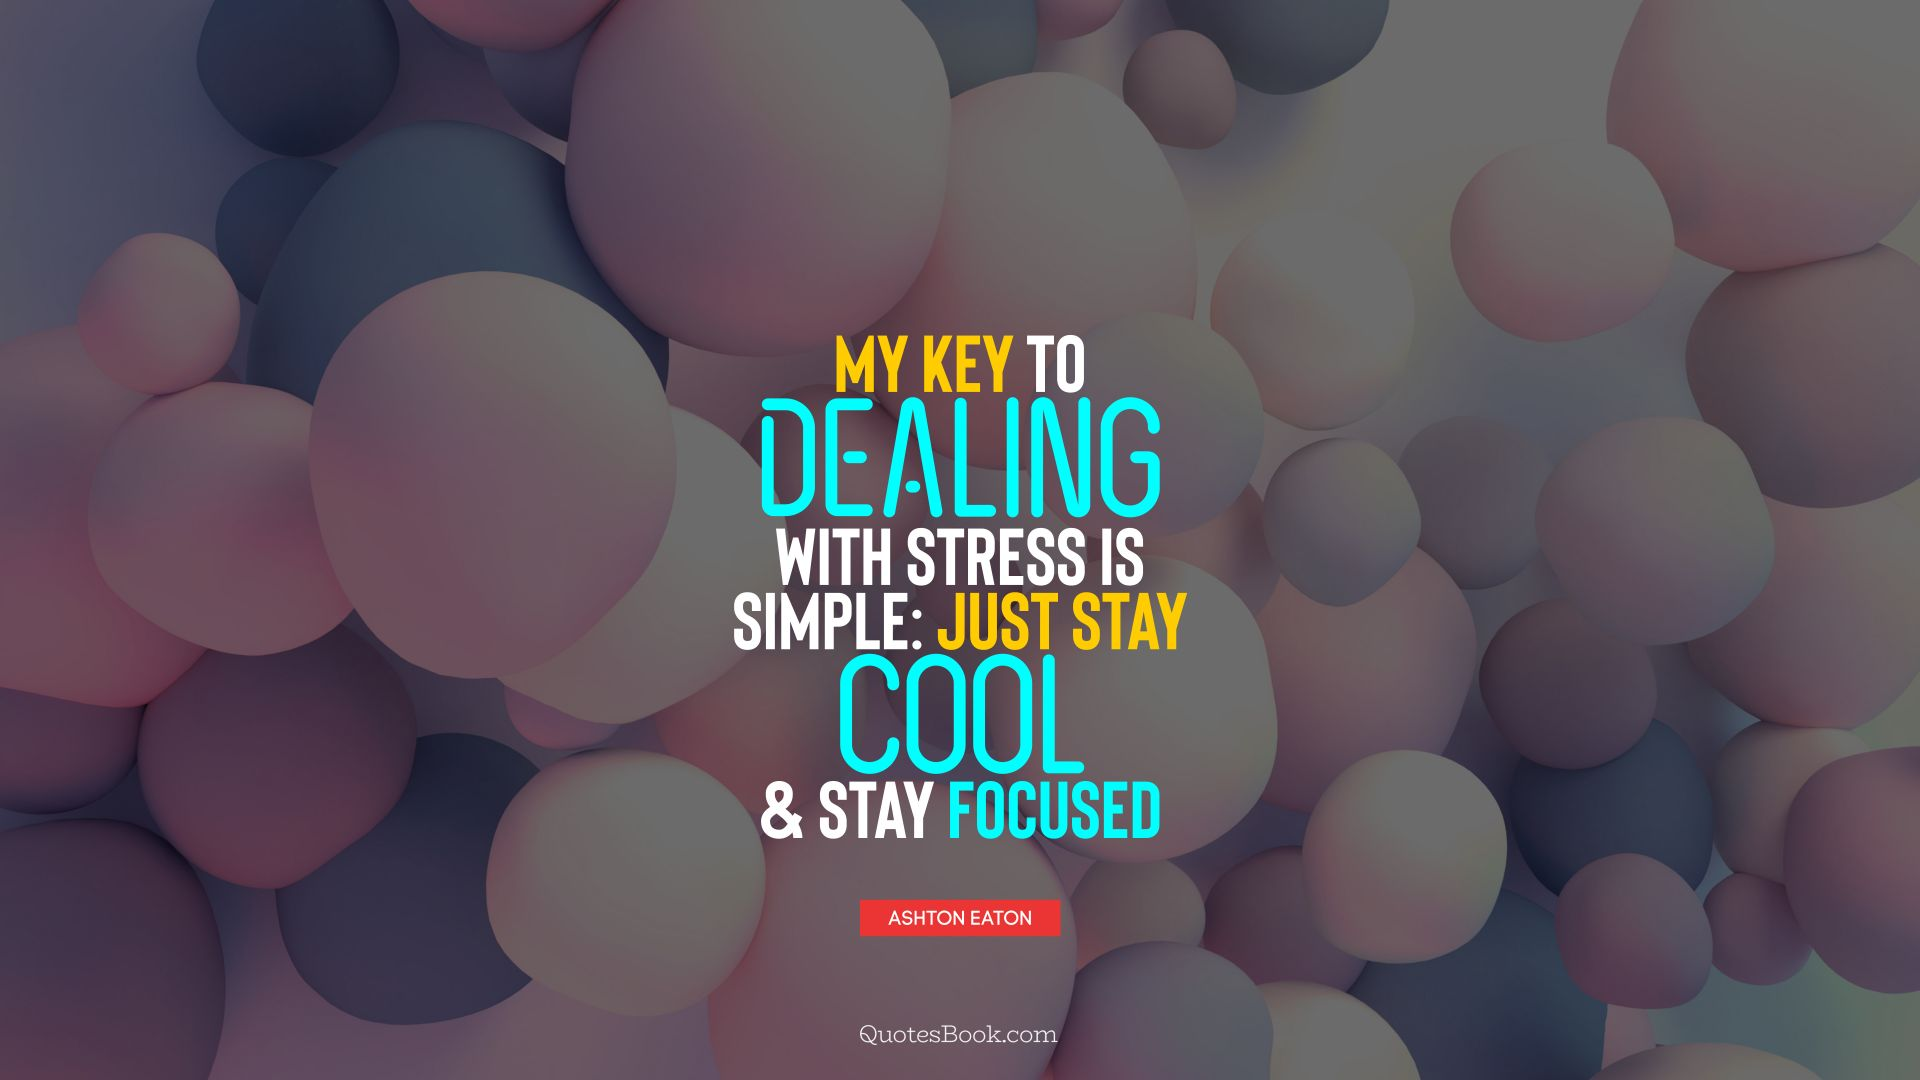 My key to dealing with stress is simple: just stay cool and stay focused. - Quote by Ashton Eaton